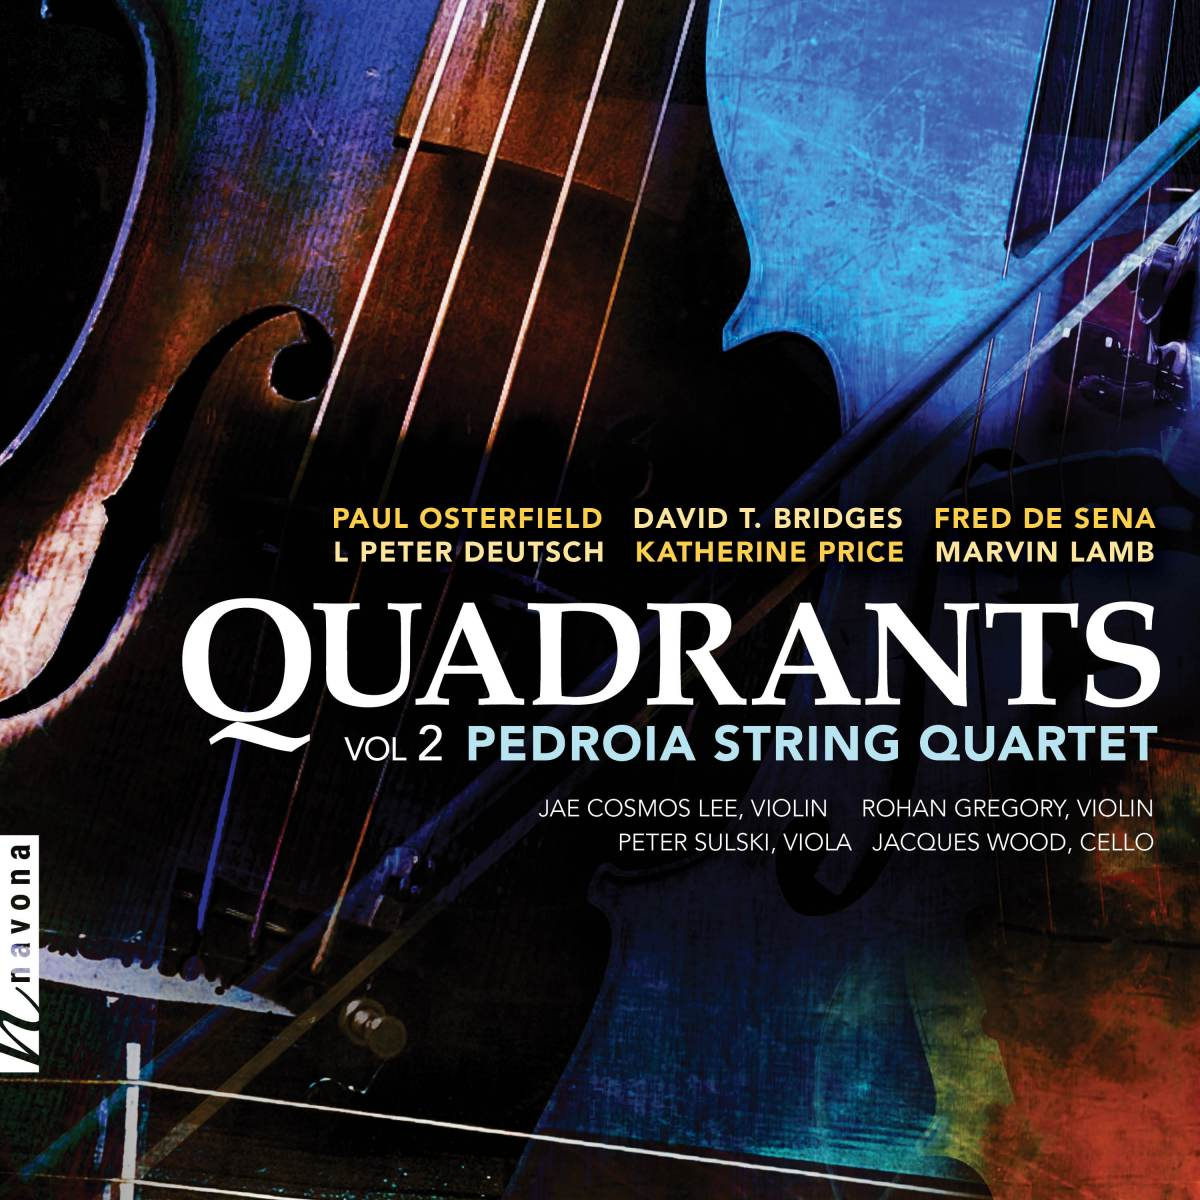 Album Review: Quadrants Vol. 2 - Pedroia String Quartet